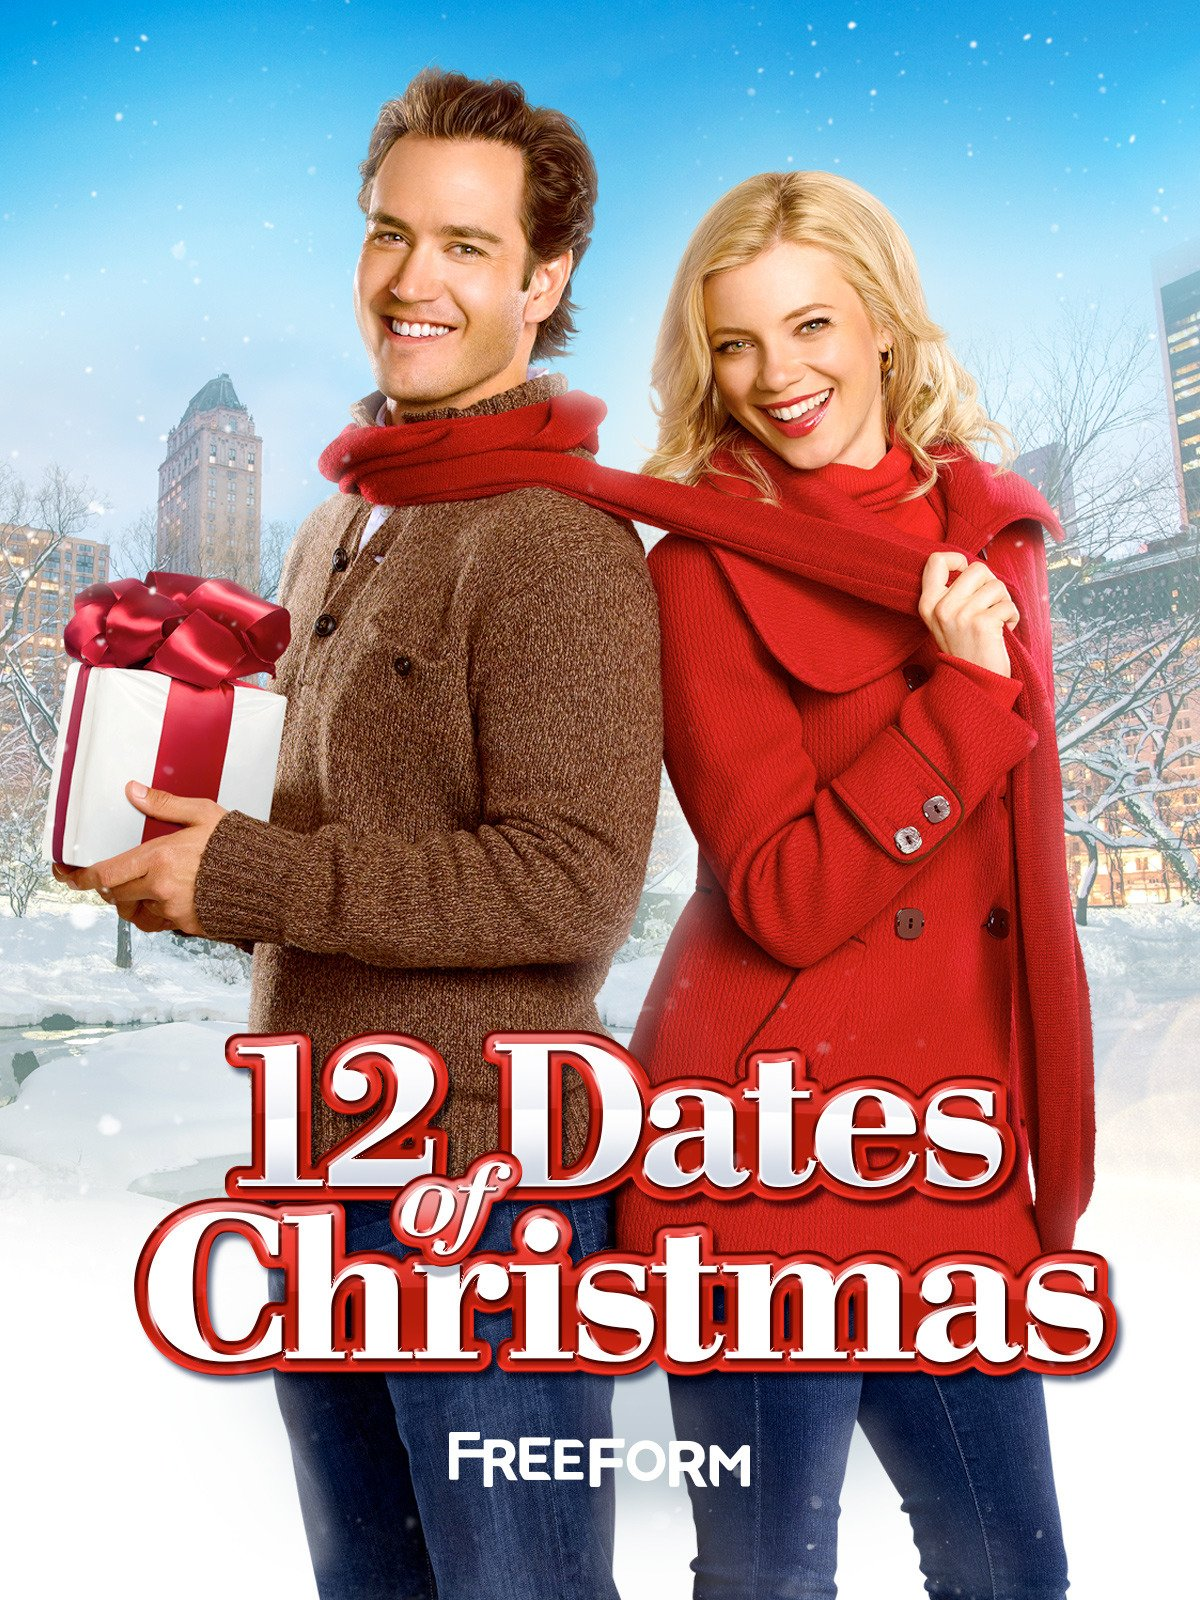 Billedresultat for 12 dates of christmas movie